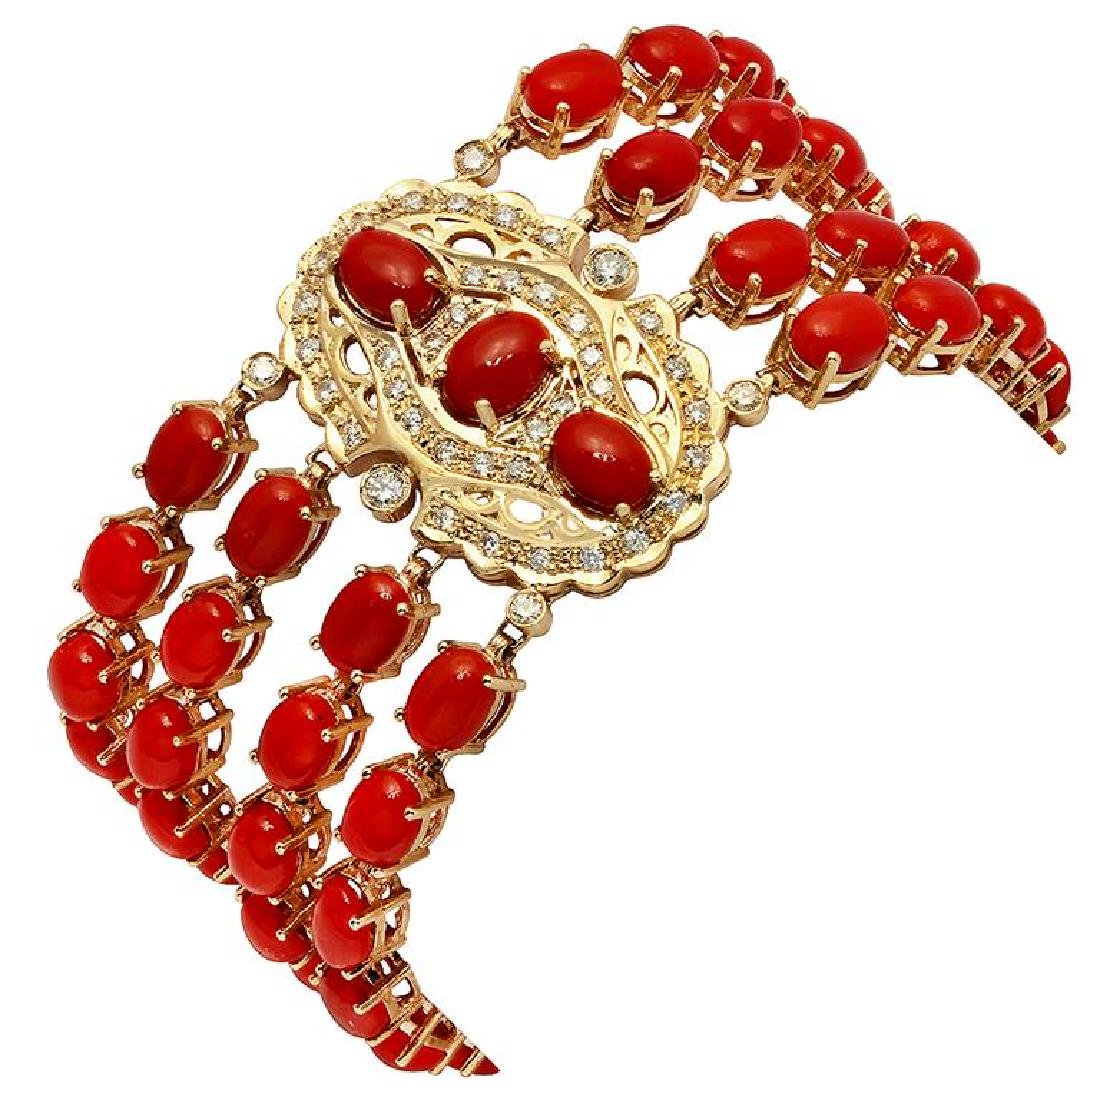 14k Yellow Gold 38.65ct Coral 1.12ct Diamond Bracelet